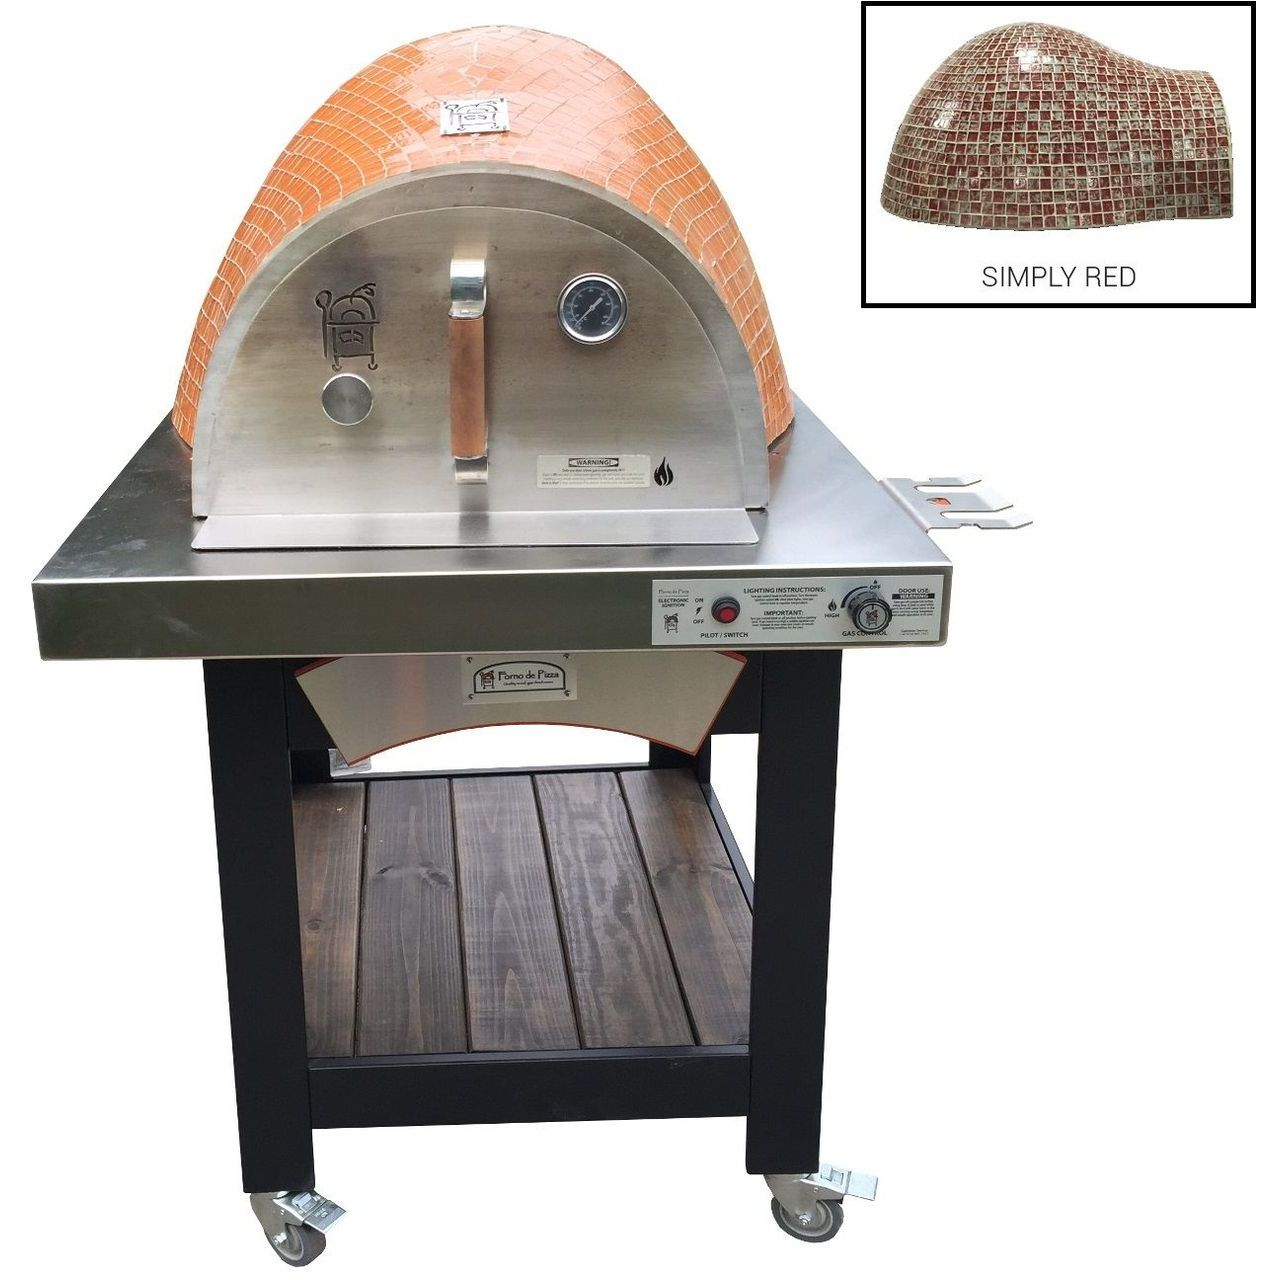 HPC Forno Hybrid Gas/Wood Oven With EI & Cart in Simply Red - NG